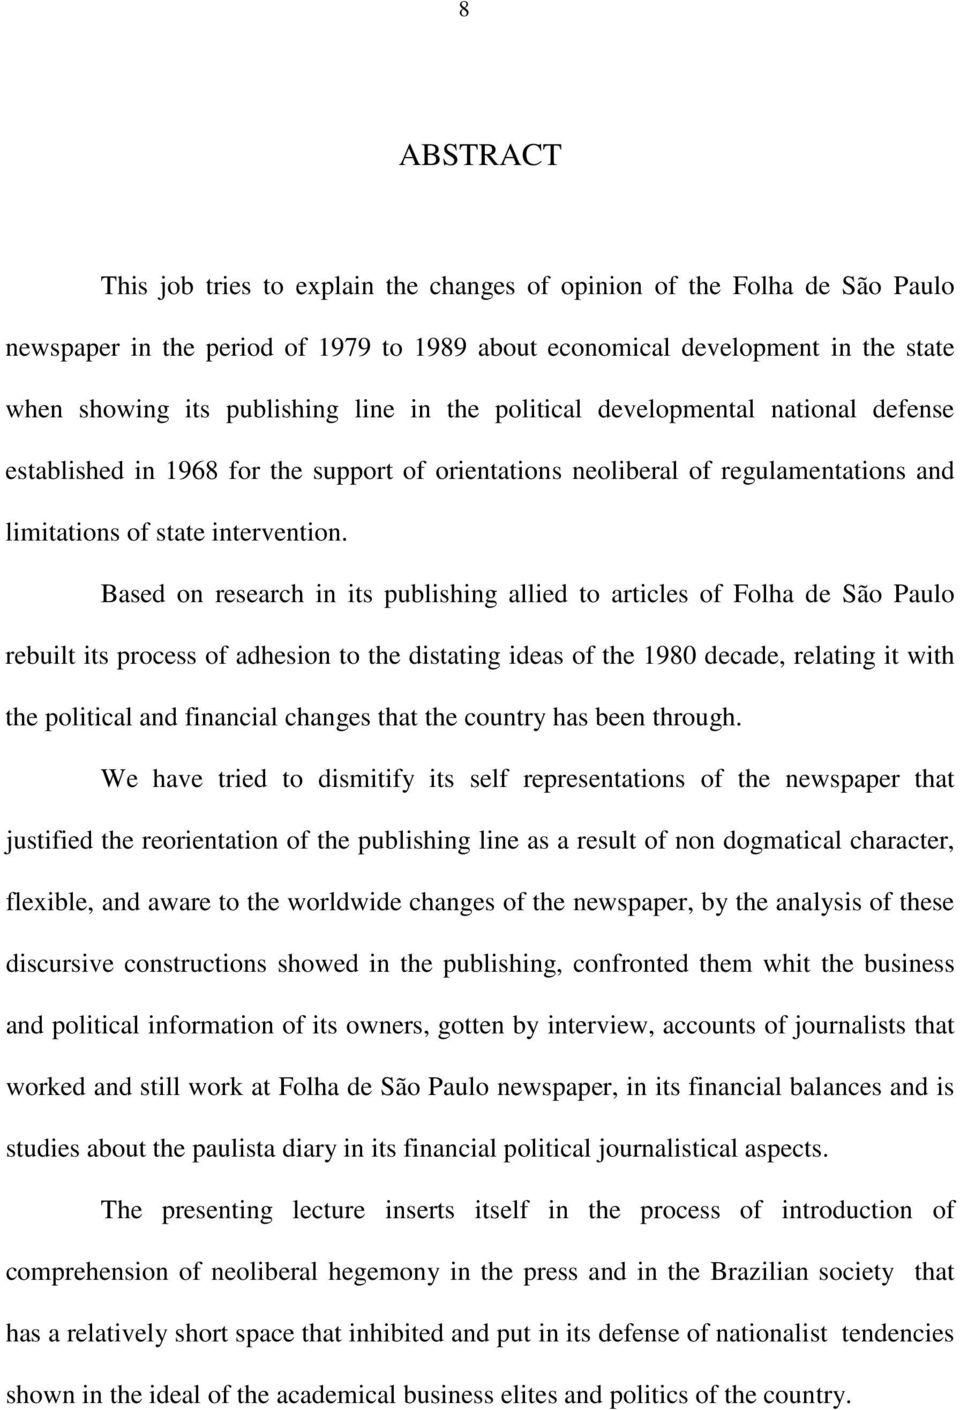 Based on research in its publishing allied to articles of Folha de São Paulo rebuilt its process of adhesion to the distating ideas of the 1980 decade, relating it with the political and financial